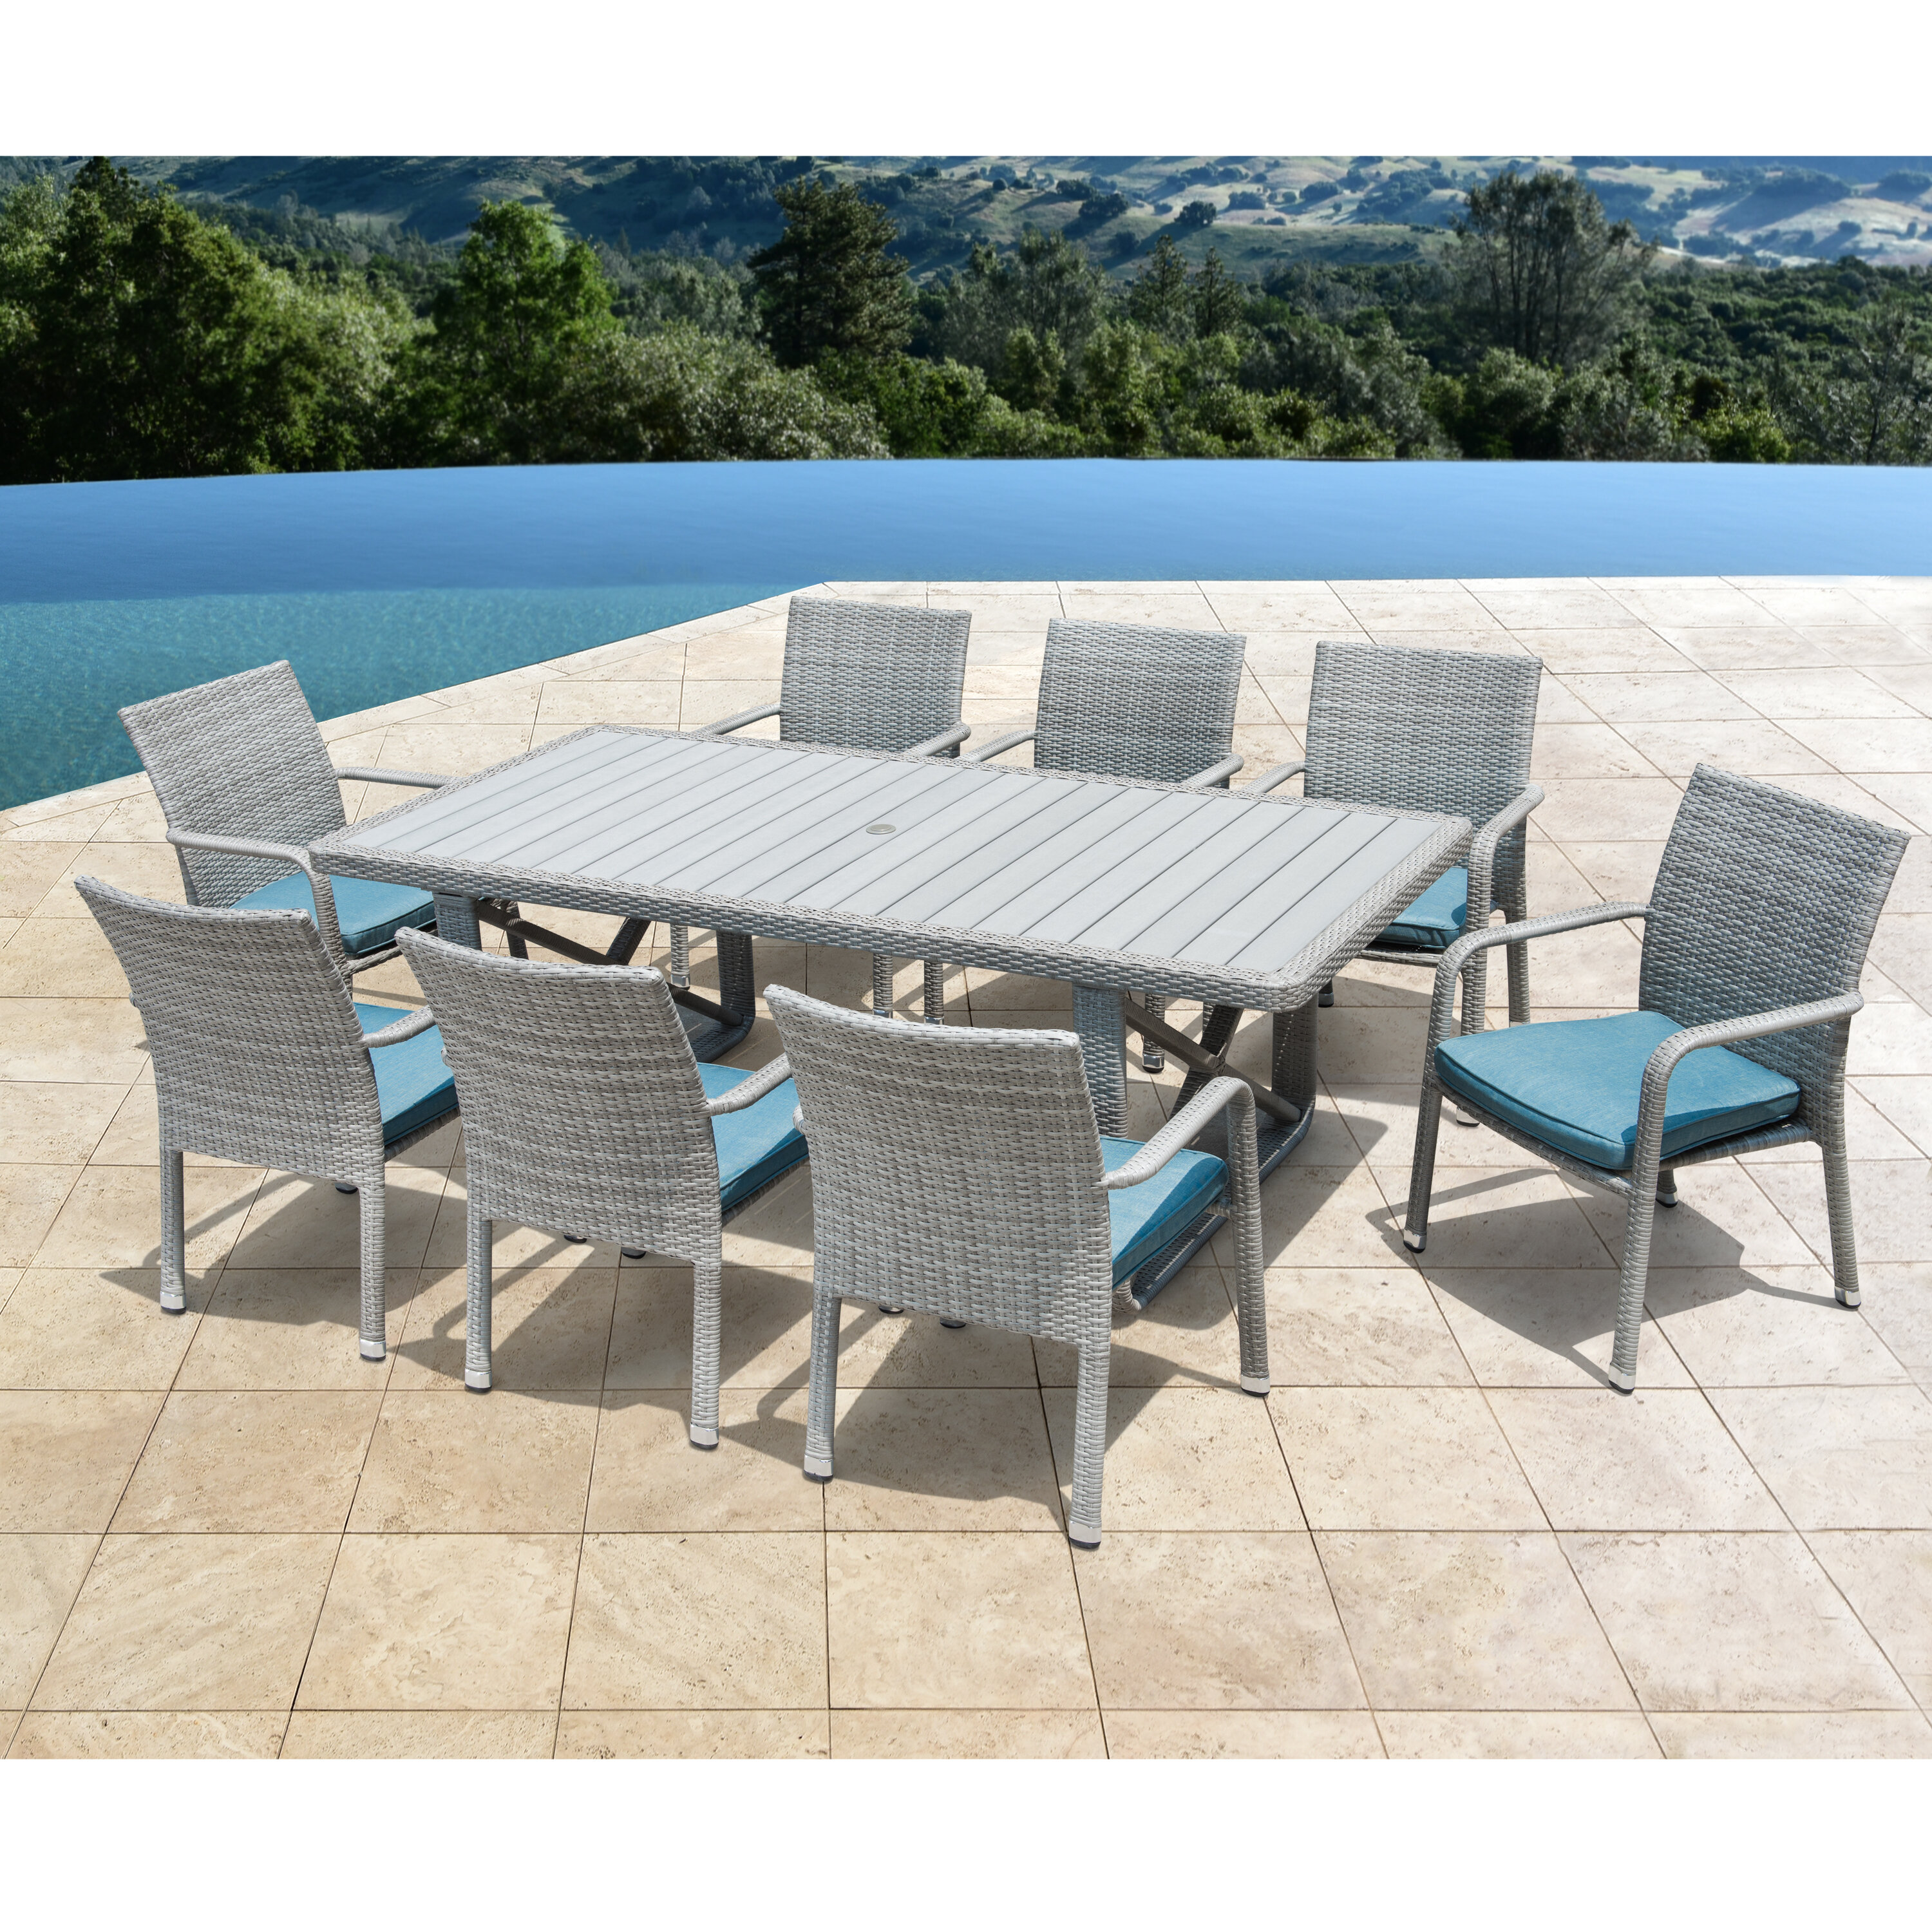 Weber 9 Piece Patio Dining Set With Cushions